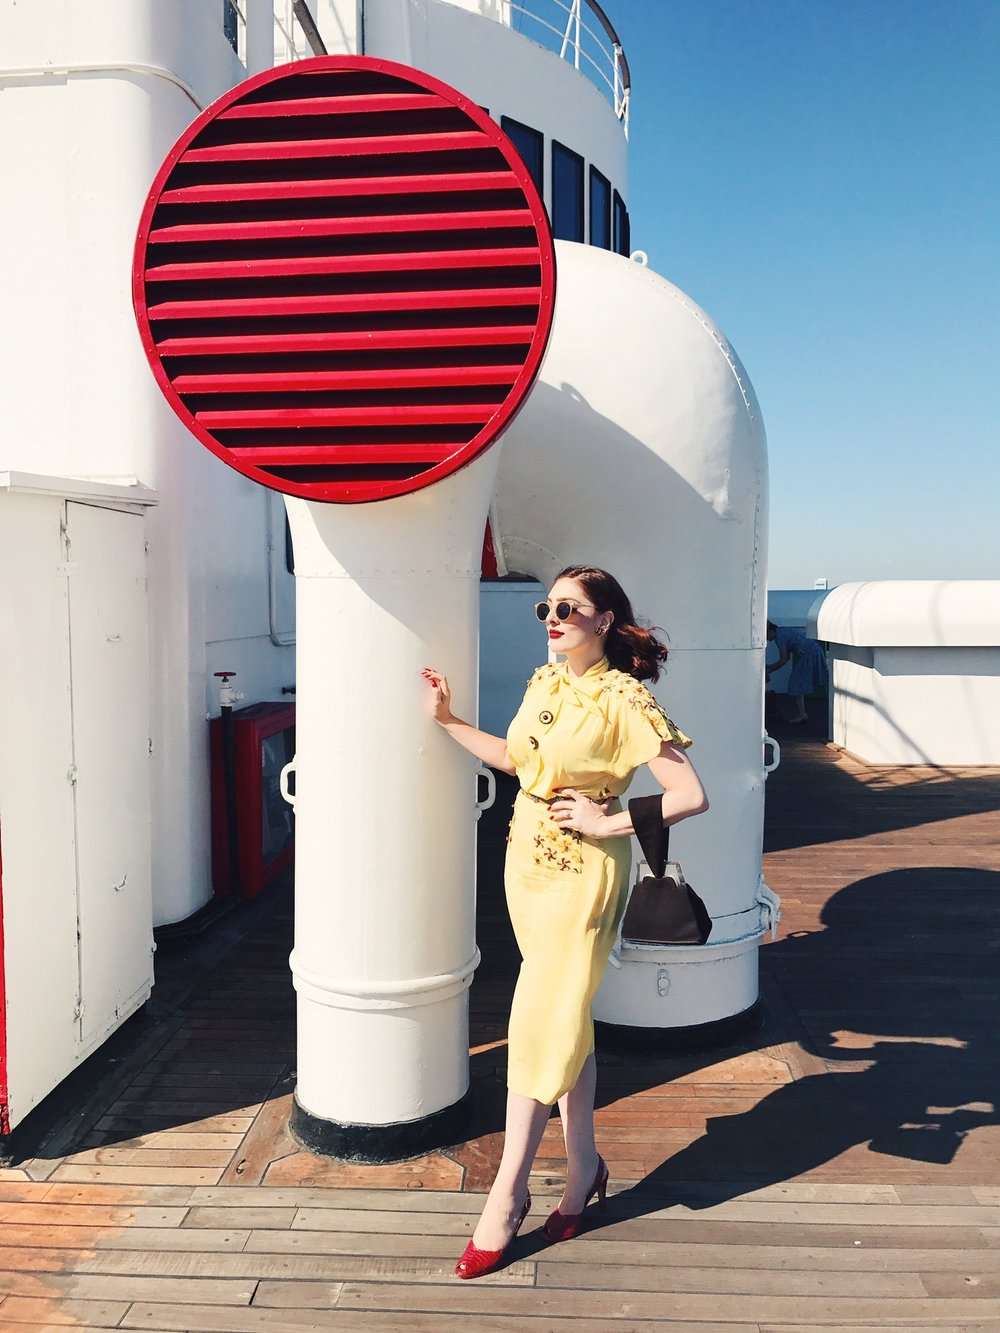 Deck of the Queen Mary  Photo via  Finding Lost Angeles  (2017)